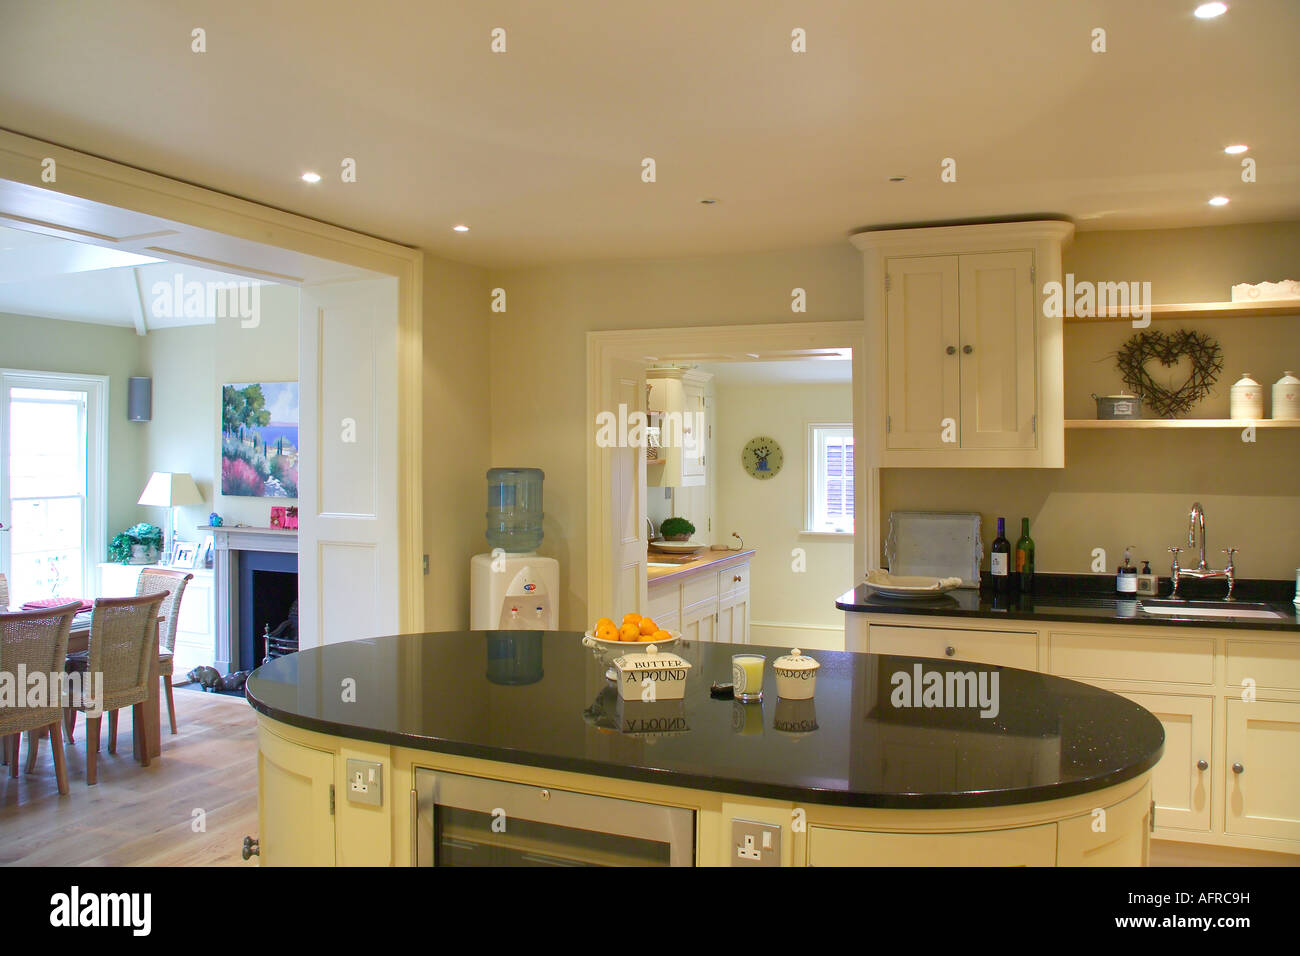 Kitchen Granite Worktop Black Granite Worktop On Oval Island Unit In Modern Cream Kitchen